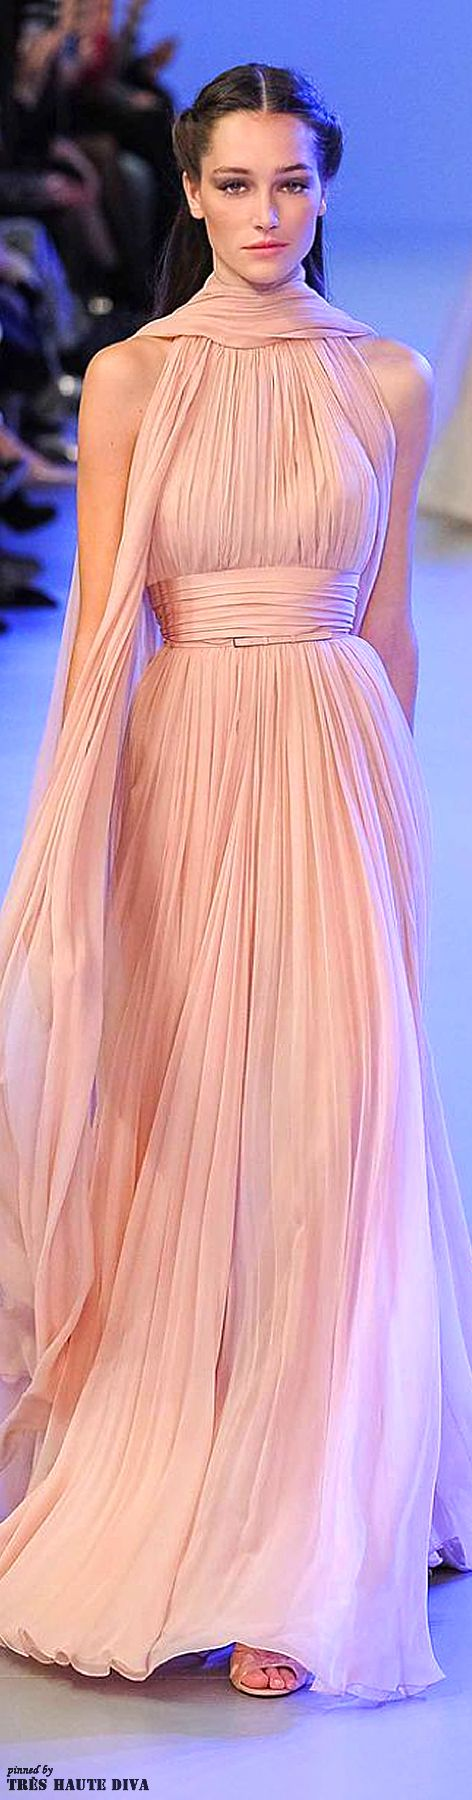 Elie Saab Spring 2014 Couture | Keep The Glamour, ~LadyLuxury~